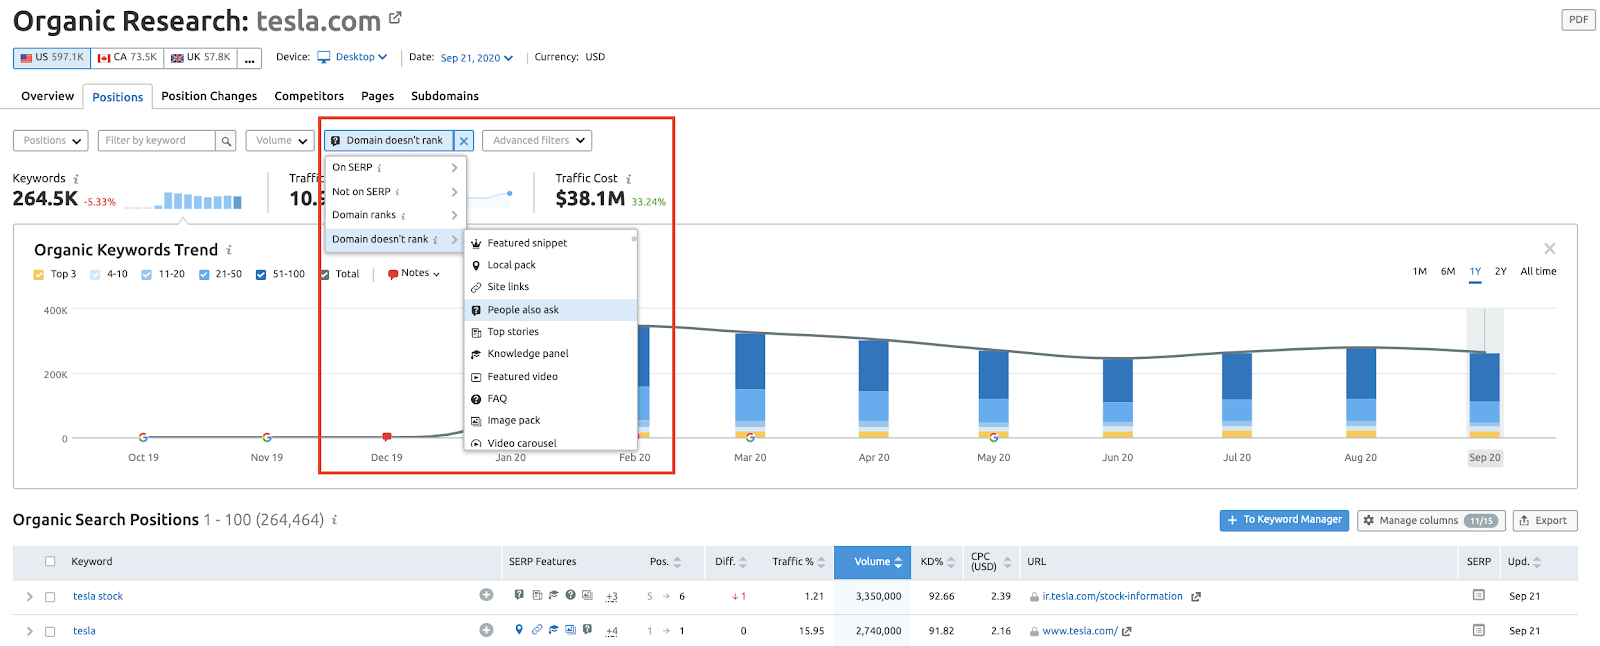 SEMrush Organic Research tool screenshot